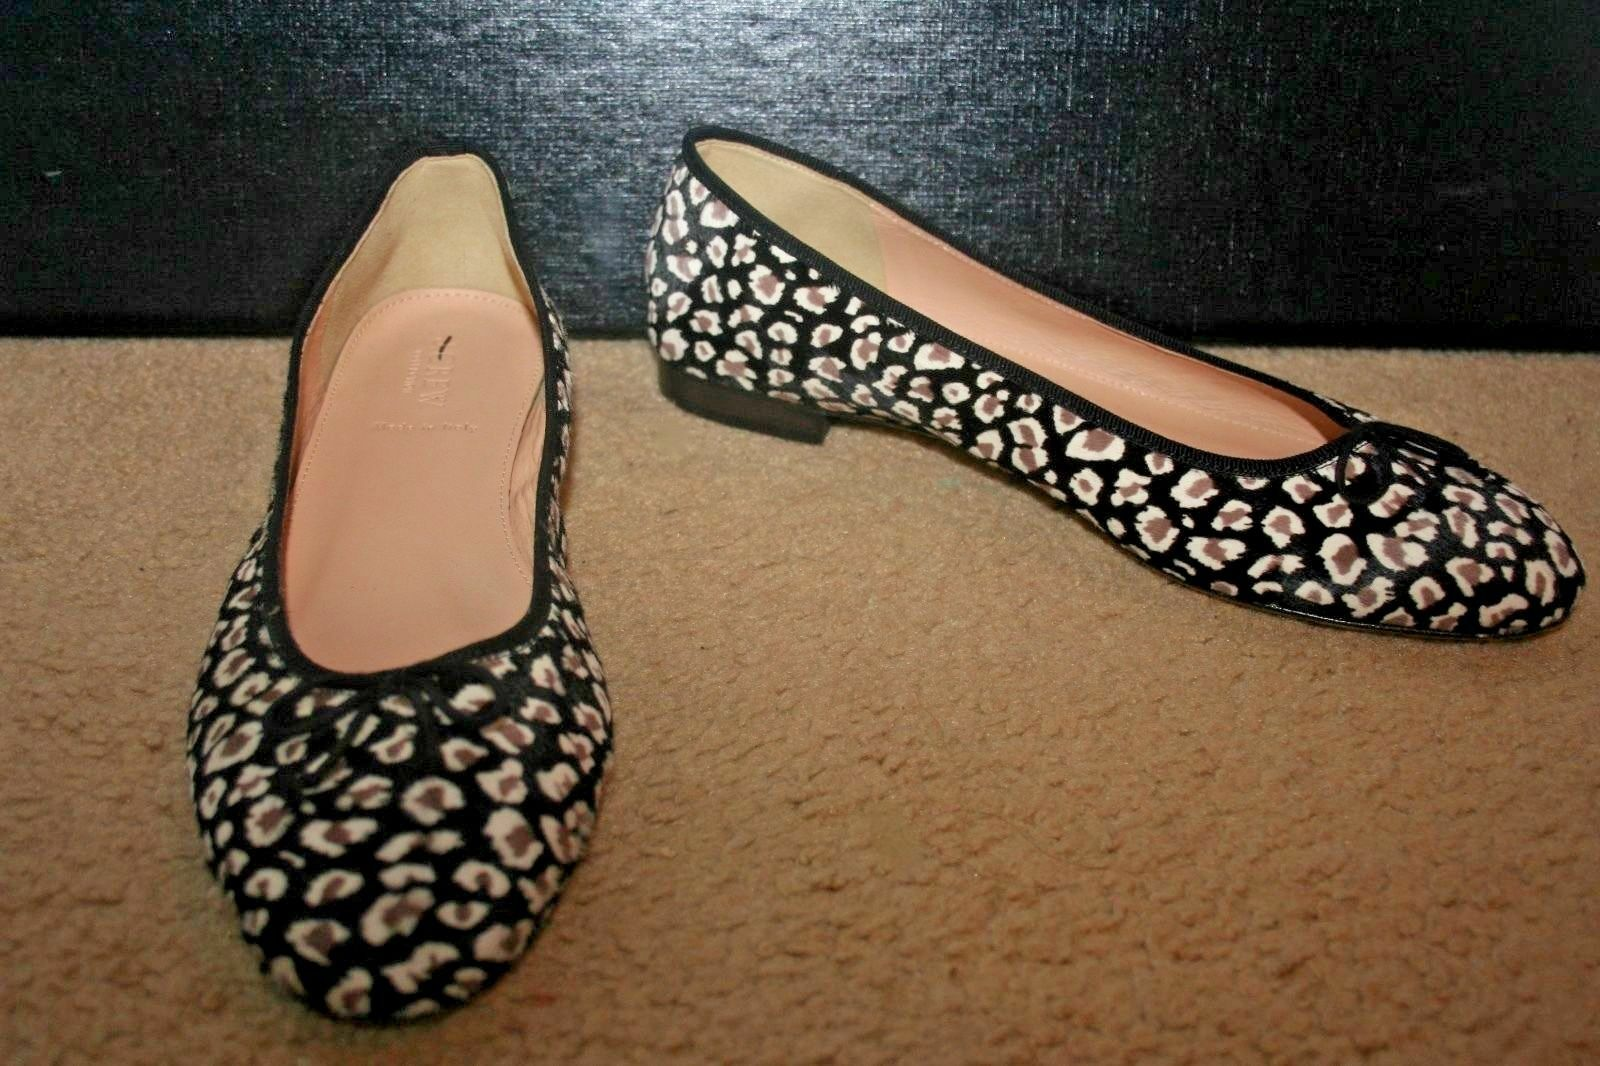 J.CREW COLLECTION FLATS KIKI LEOPARD CALF HAIR BALLET FLATS COLLECTION SIZE 9,5M GREY BROWN F5512 233995